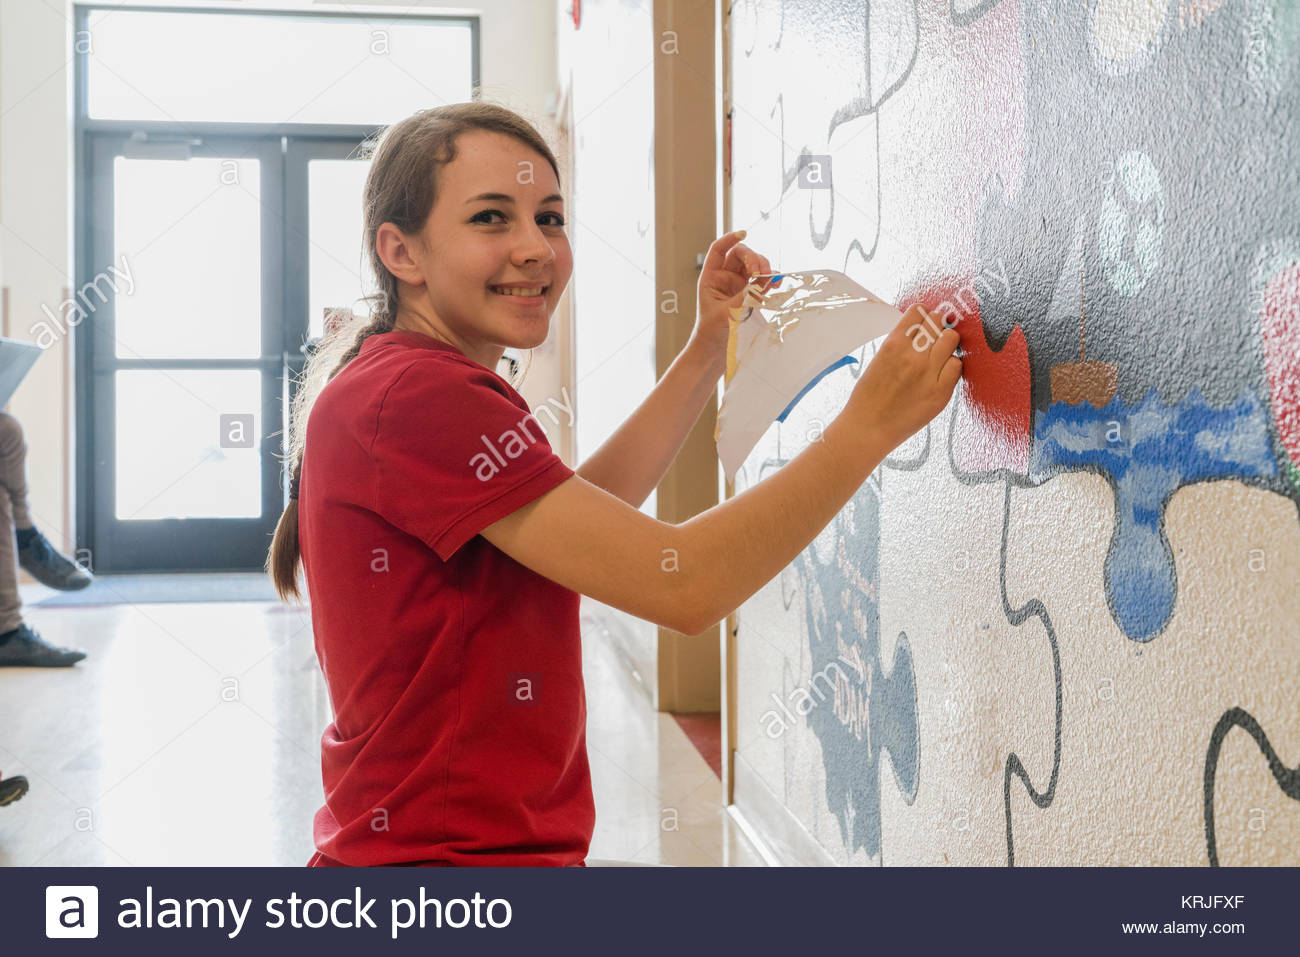 Portrait of Caucasian girl painting mural on wall in school with stencil - Stock Image